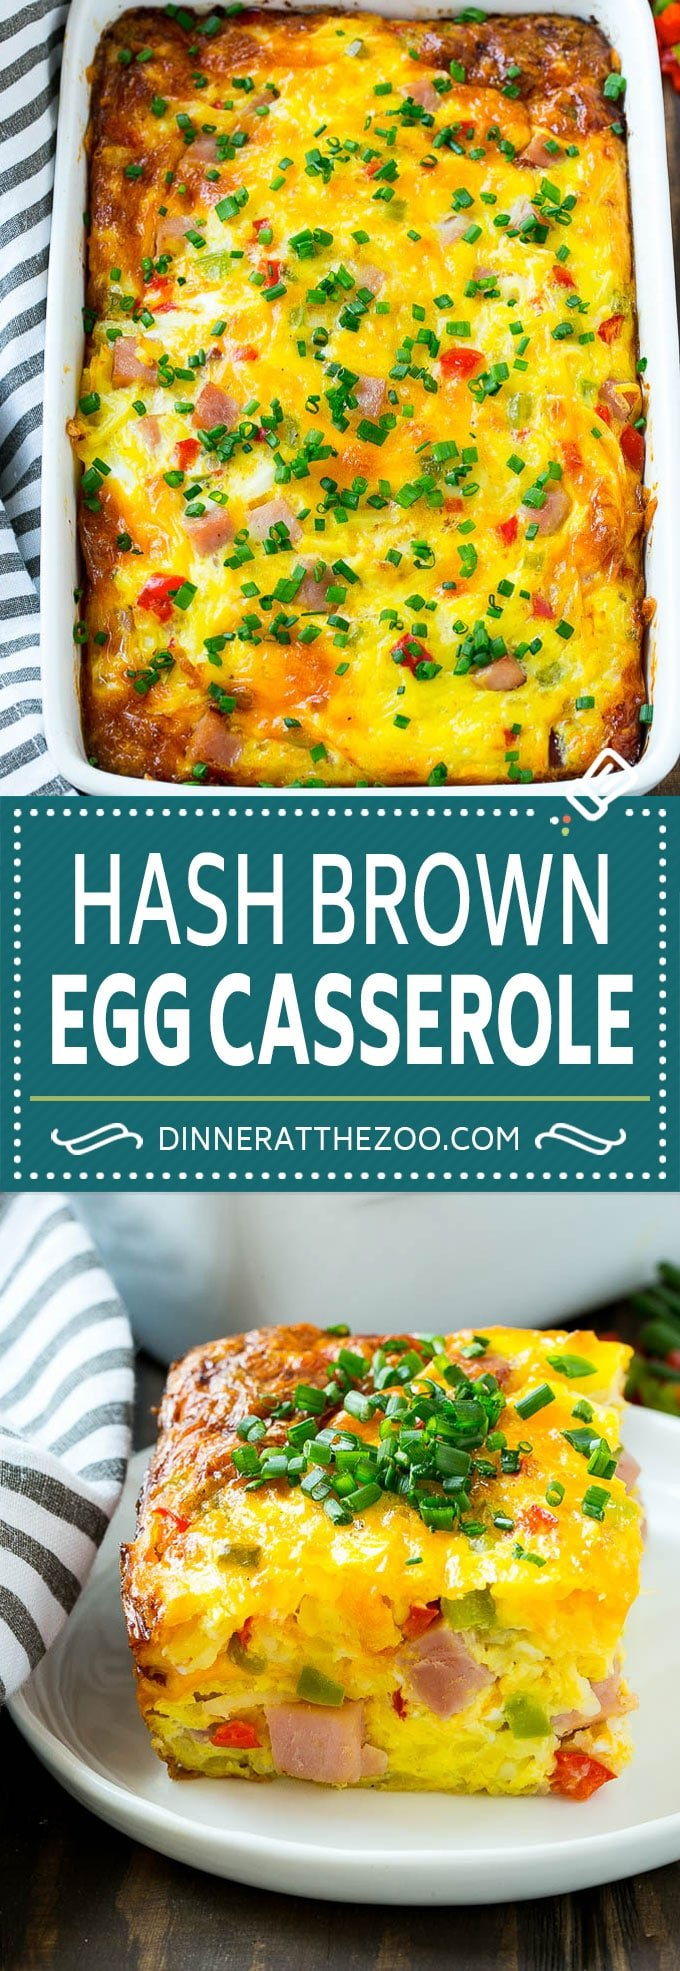 Hash Brown Egg Casserole Recipe | Breakfast Casserole with Ham | Hash Brown Casserole | Ham and Egg Casserole | Egg Casserole with Ham #breakfast #casserole #eggs #ham #dinneratthezoo #brunch